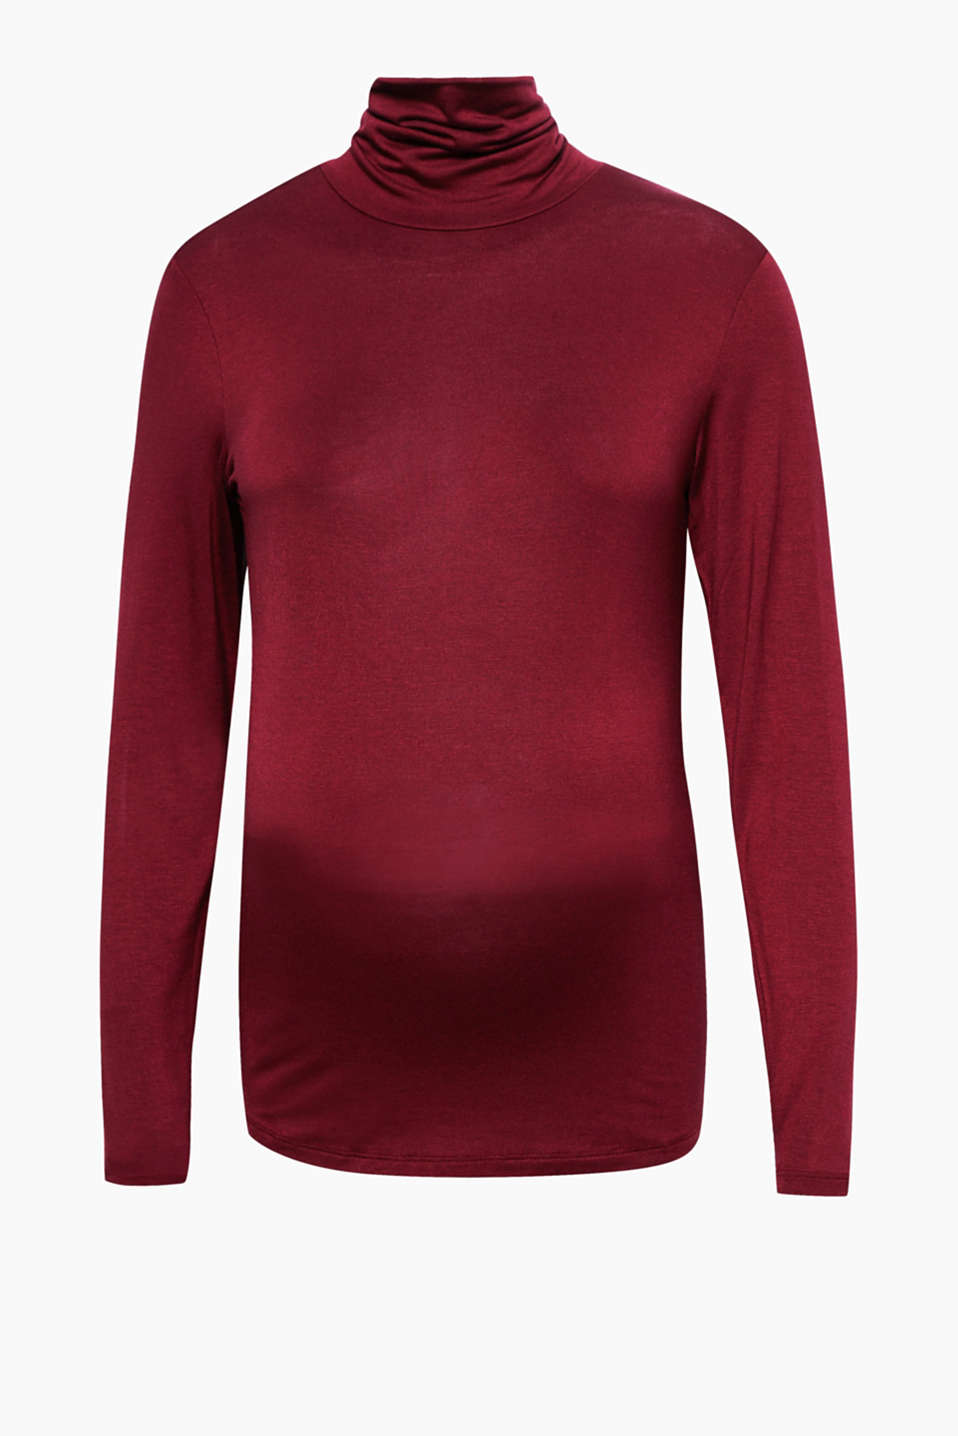 Versatile basic made of skin-friendly fabric: long sleeve jersey top with a silky shimmer and added stretch for comfort